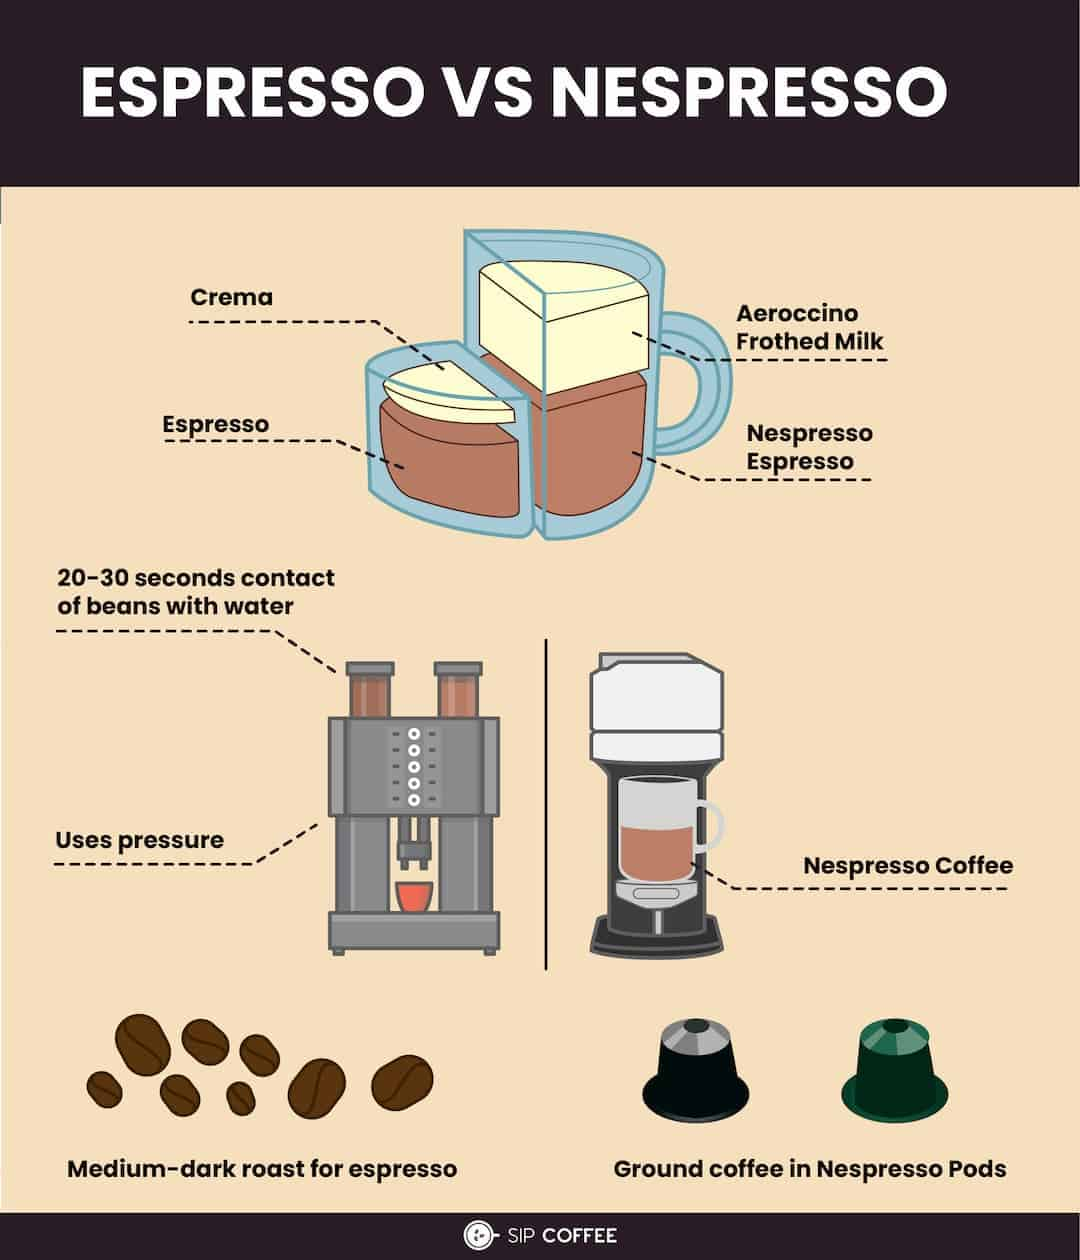 nespresso and espresso difference infographic